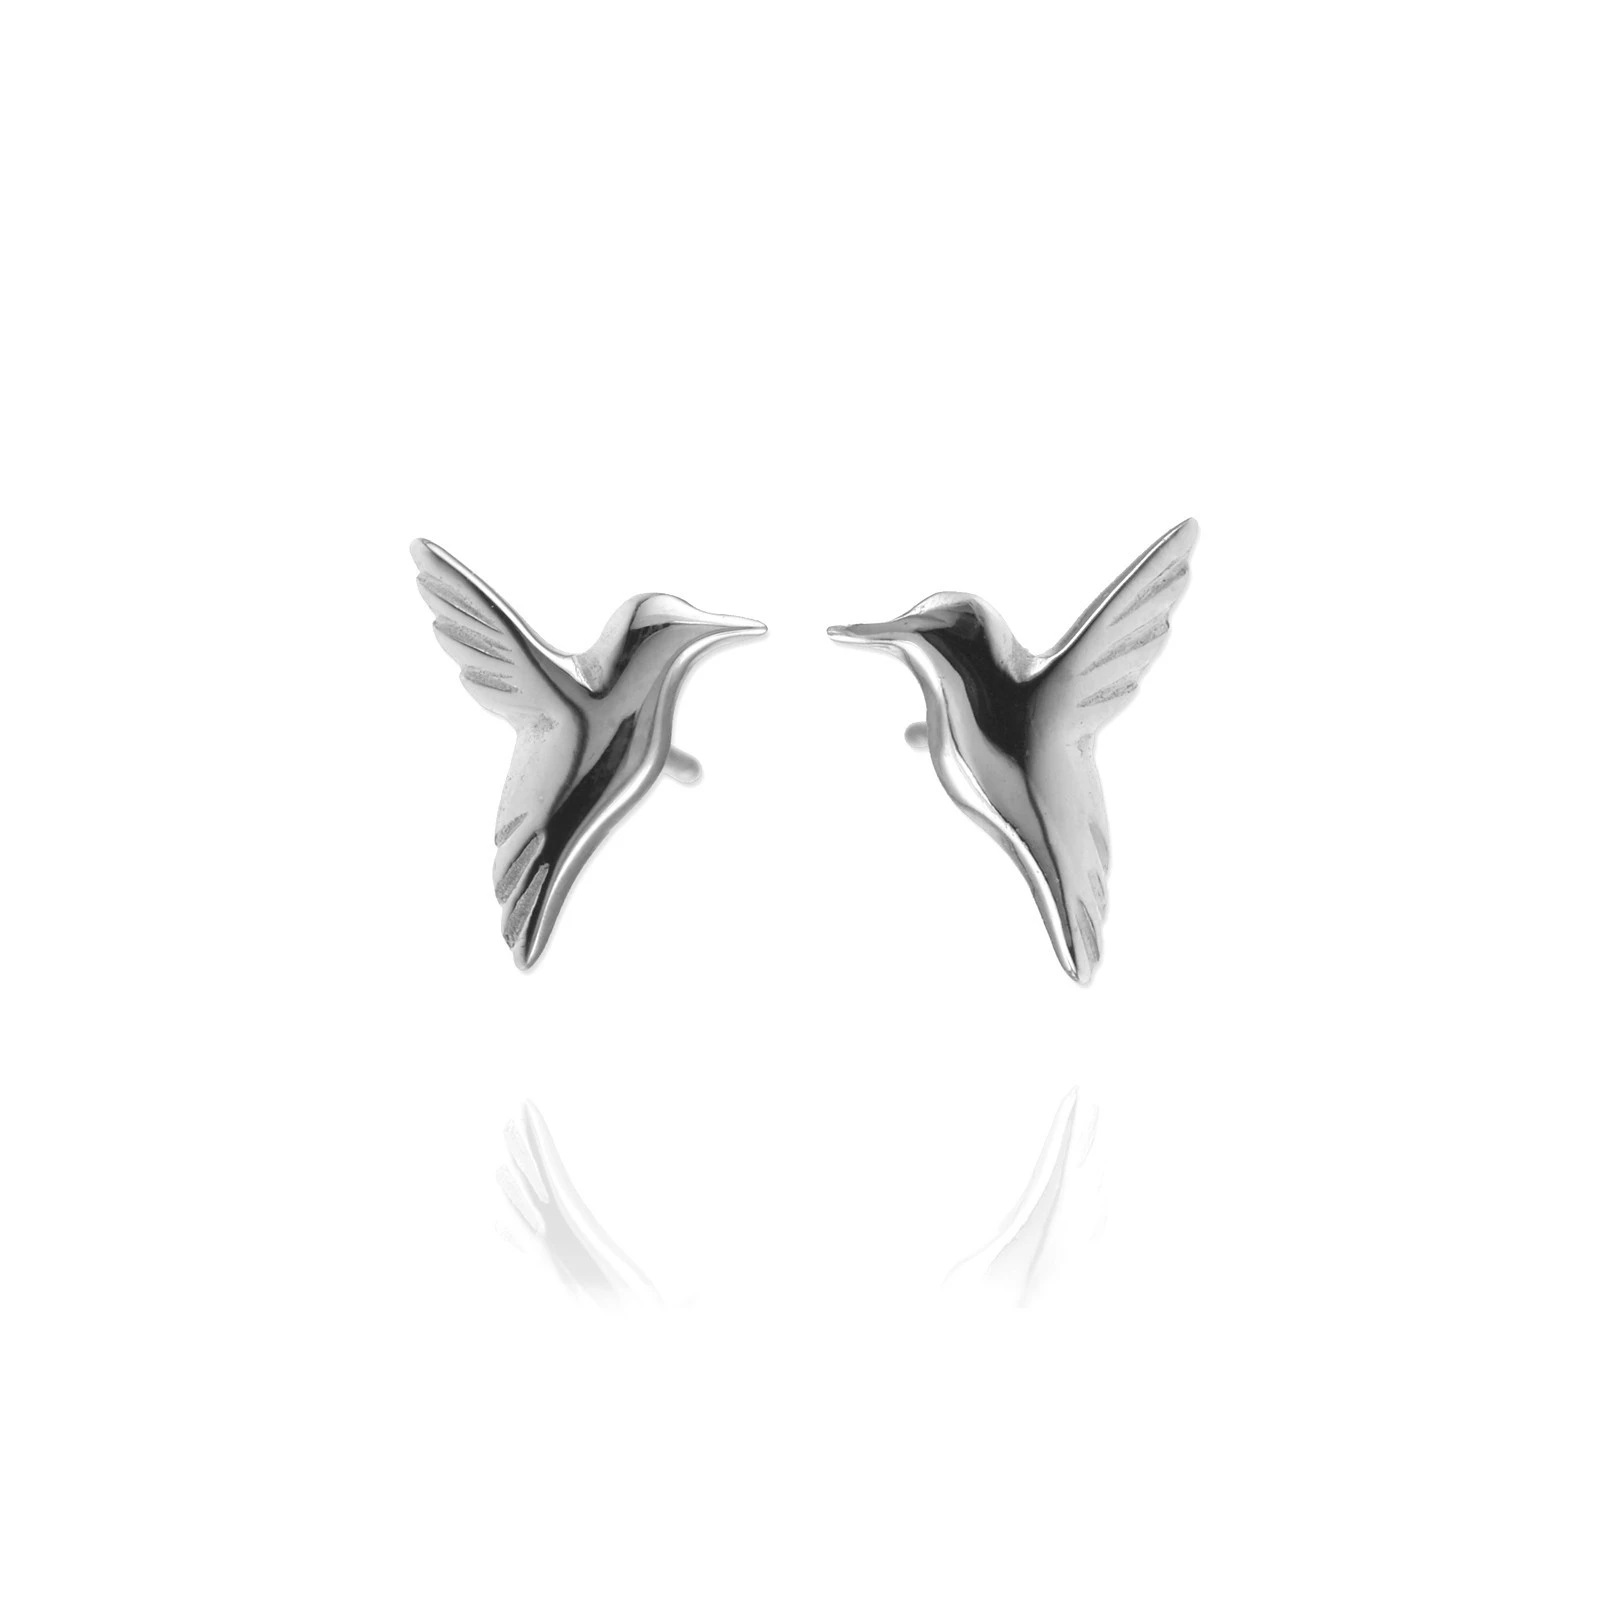 Win a pair of handmade silver hummingbird earrings, worth £69